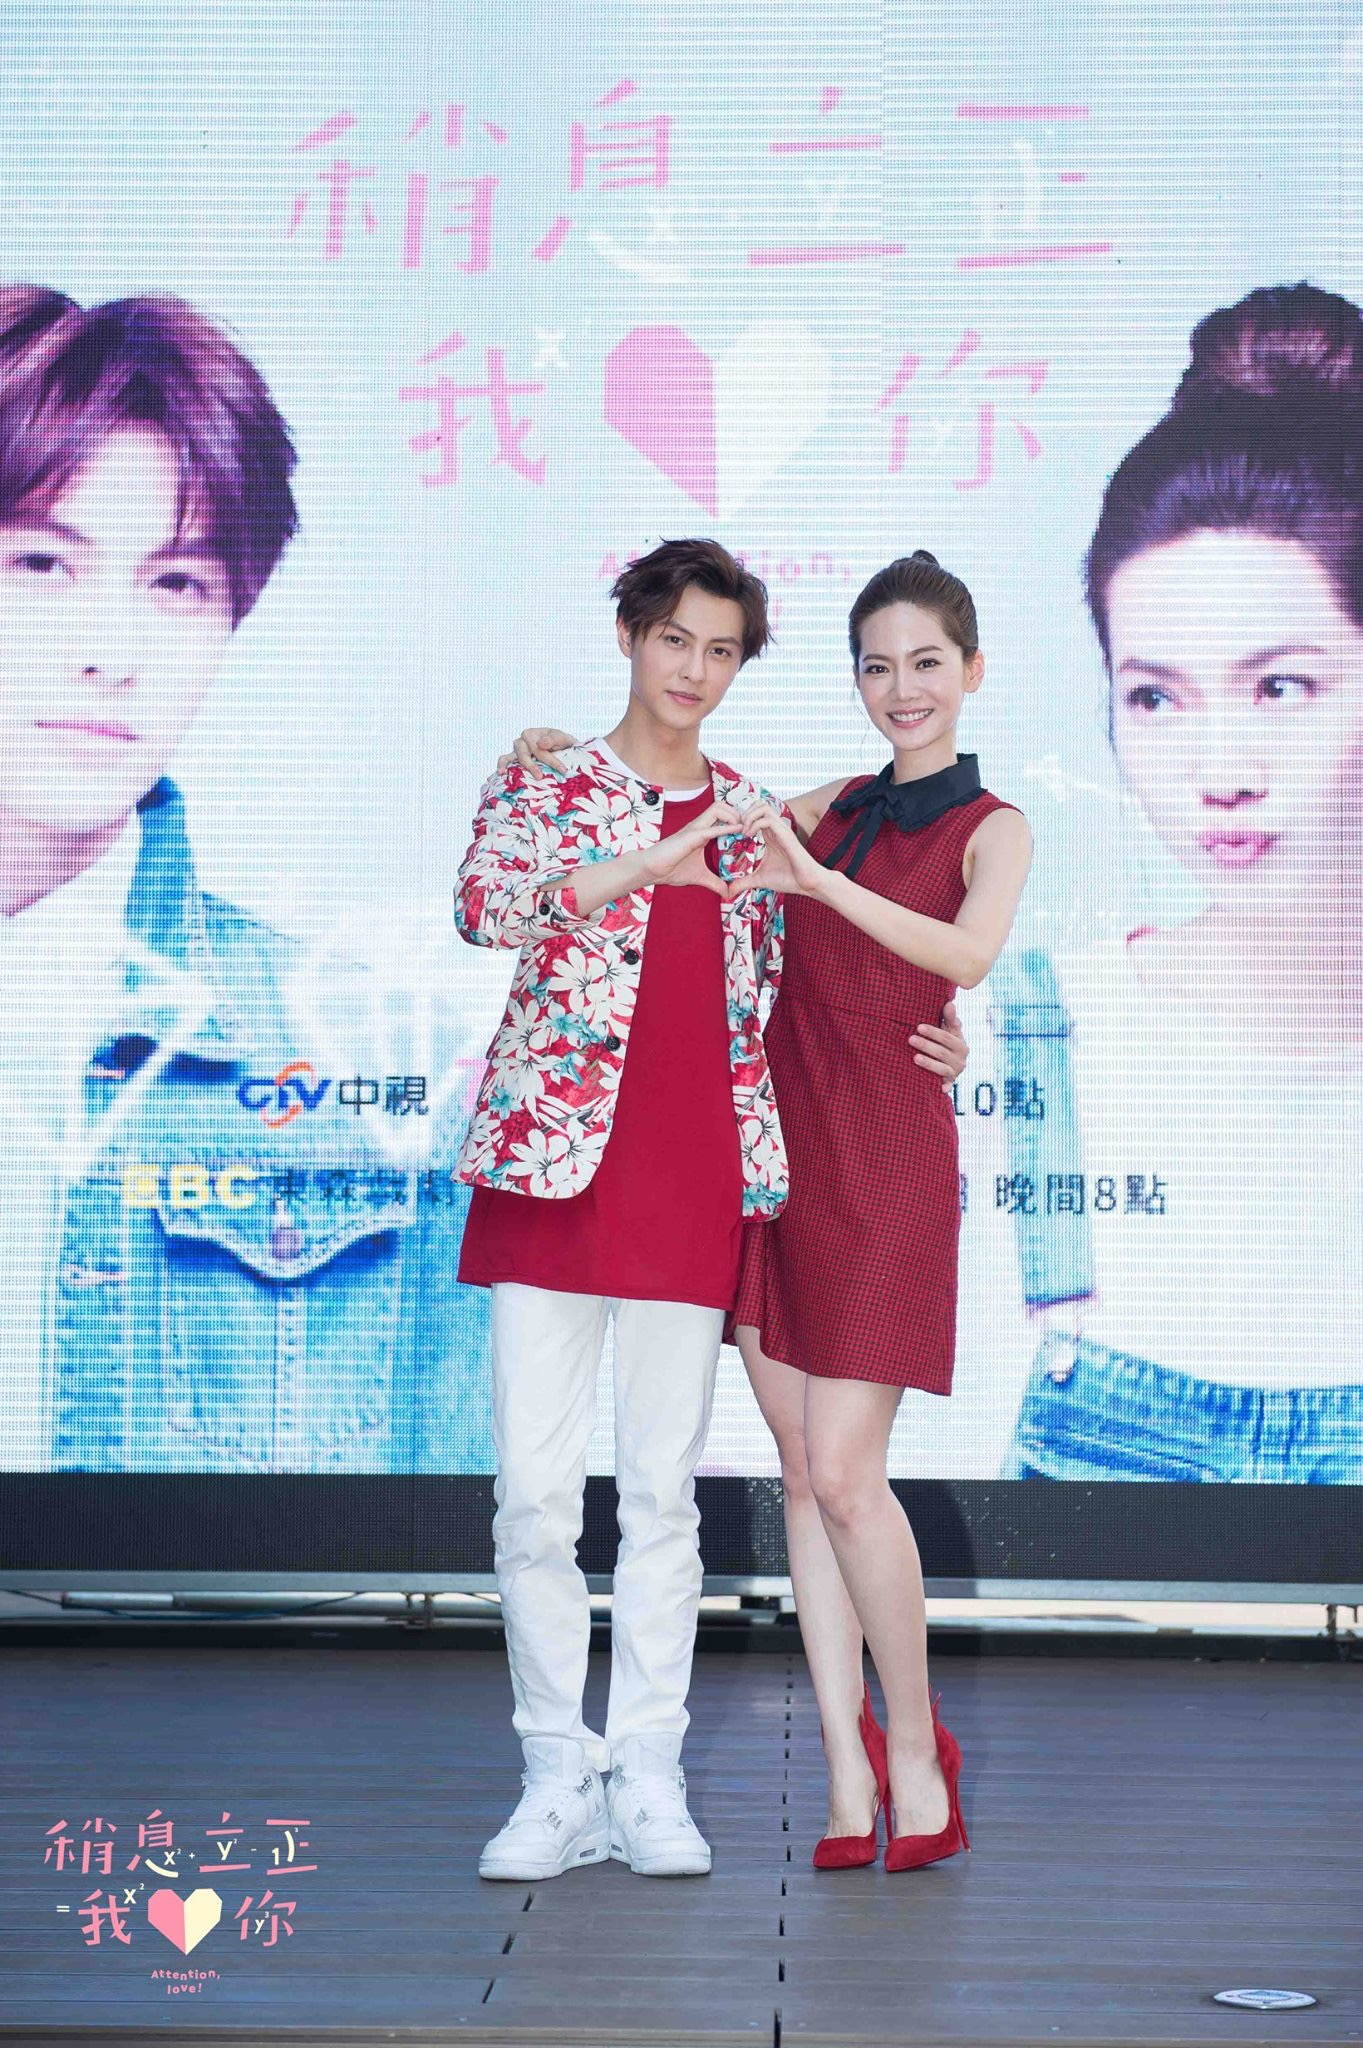 Joanne Tseng and Prince Chiu at an event for Attention, Love! (2017)